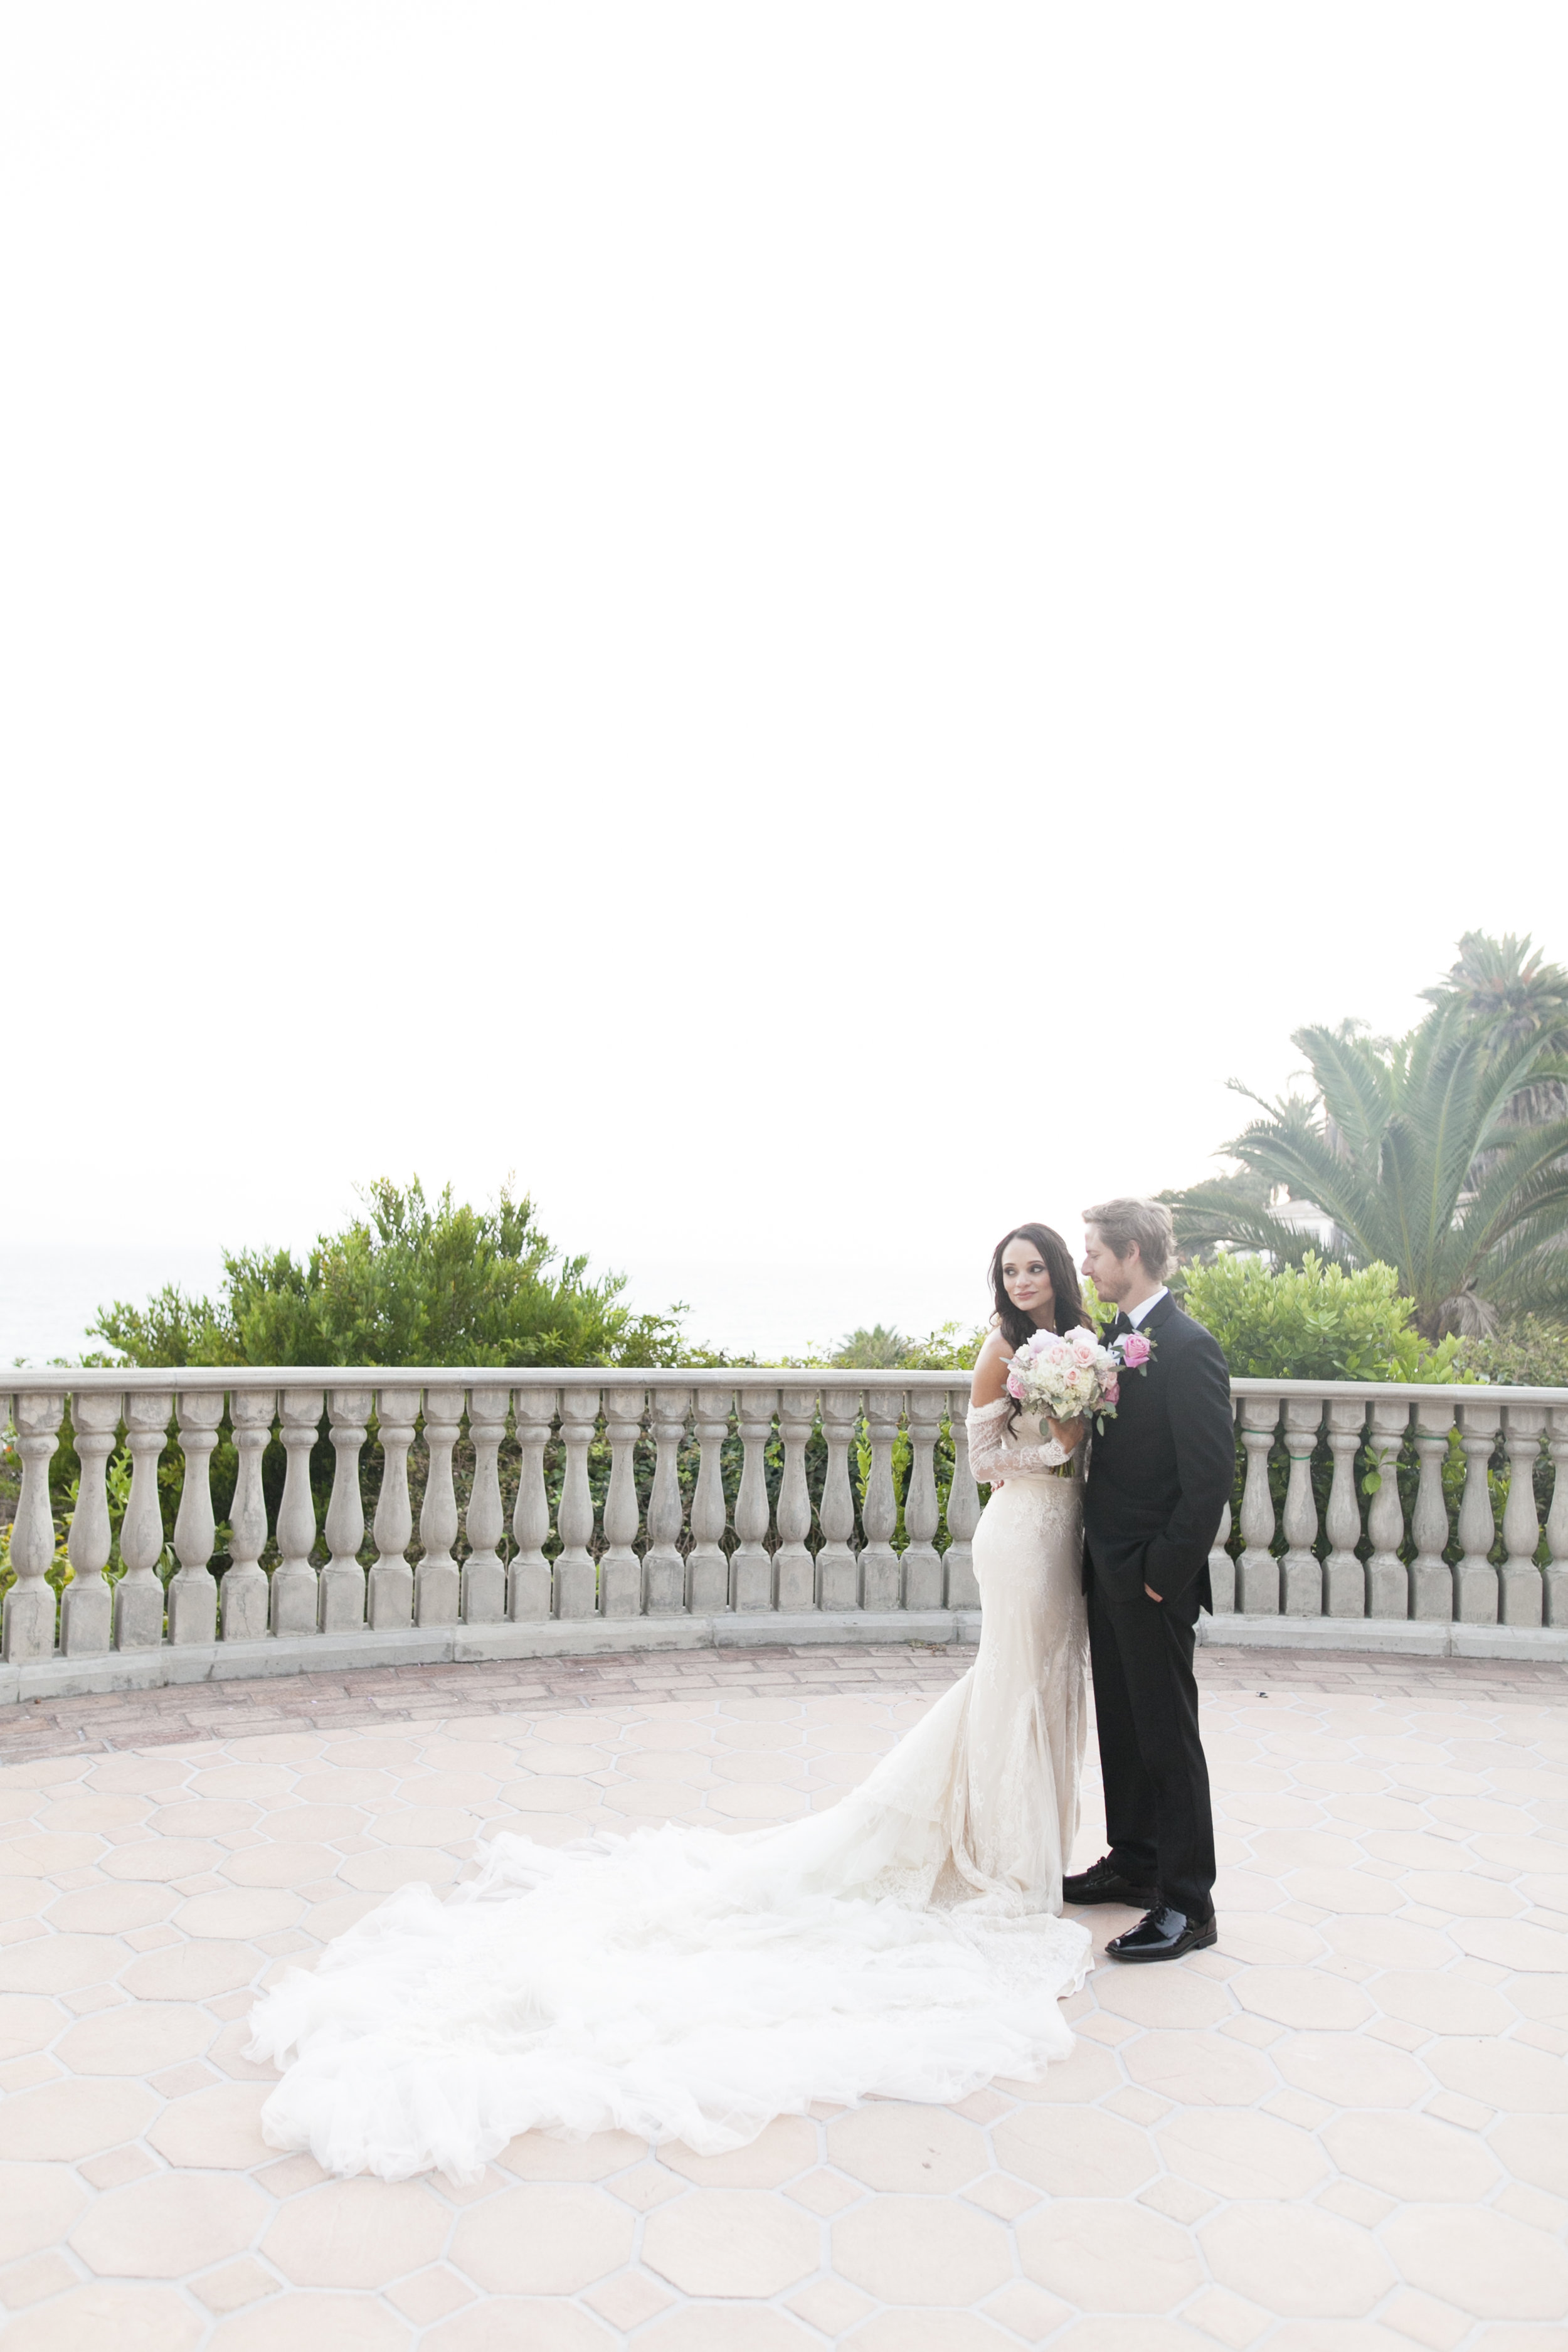 Bride and Groom Portraits - A Romantic Bel Air Bay Club Ocean-View Wedding - Southern California Wedding - Kevin Dinh Photography